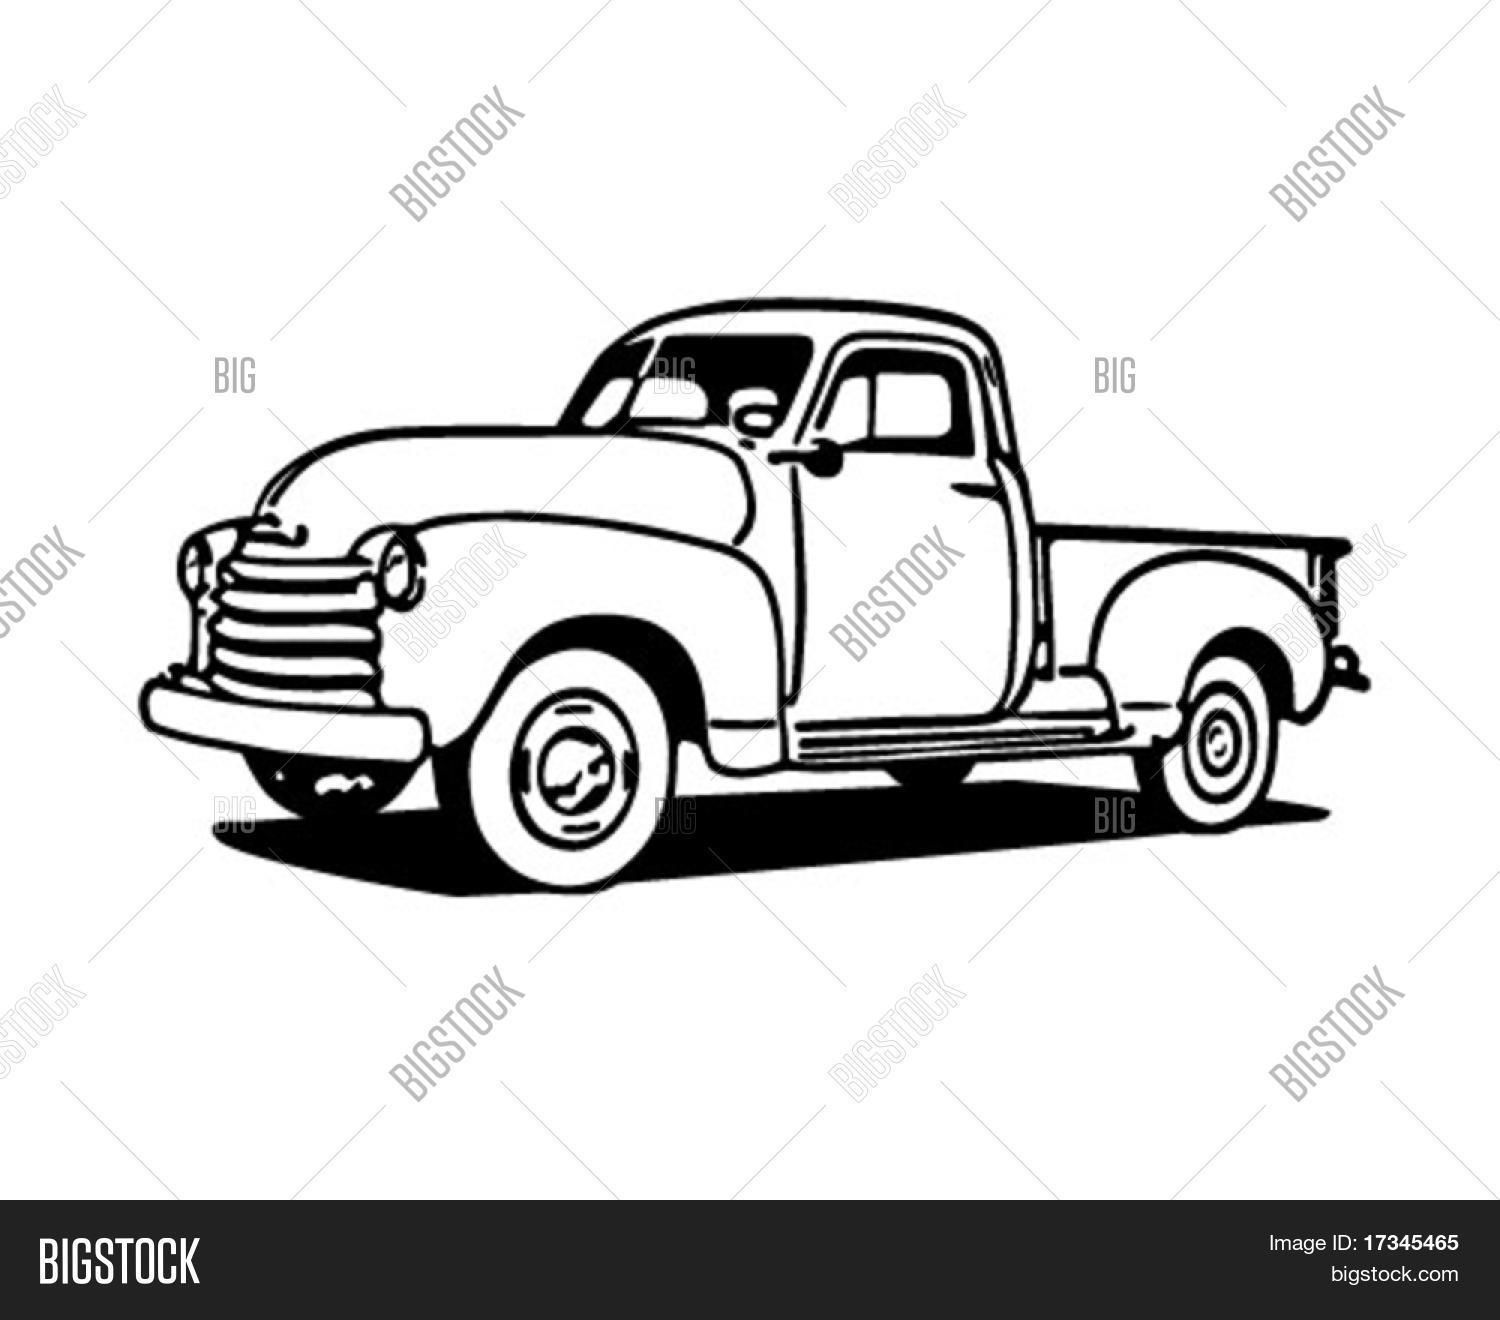 45+ Vintage truck clipart black and white info